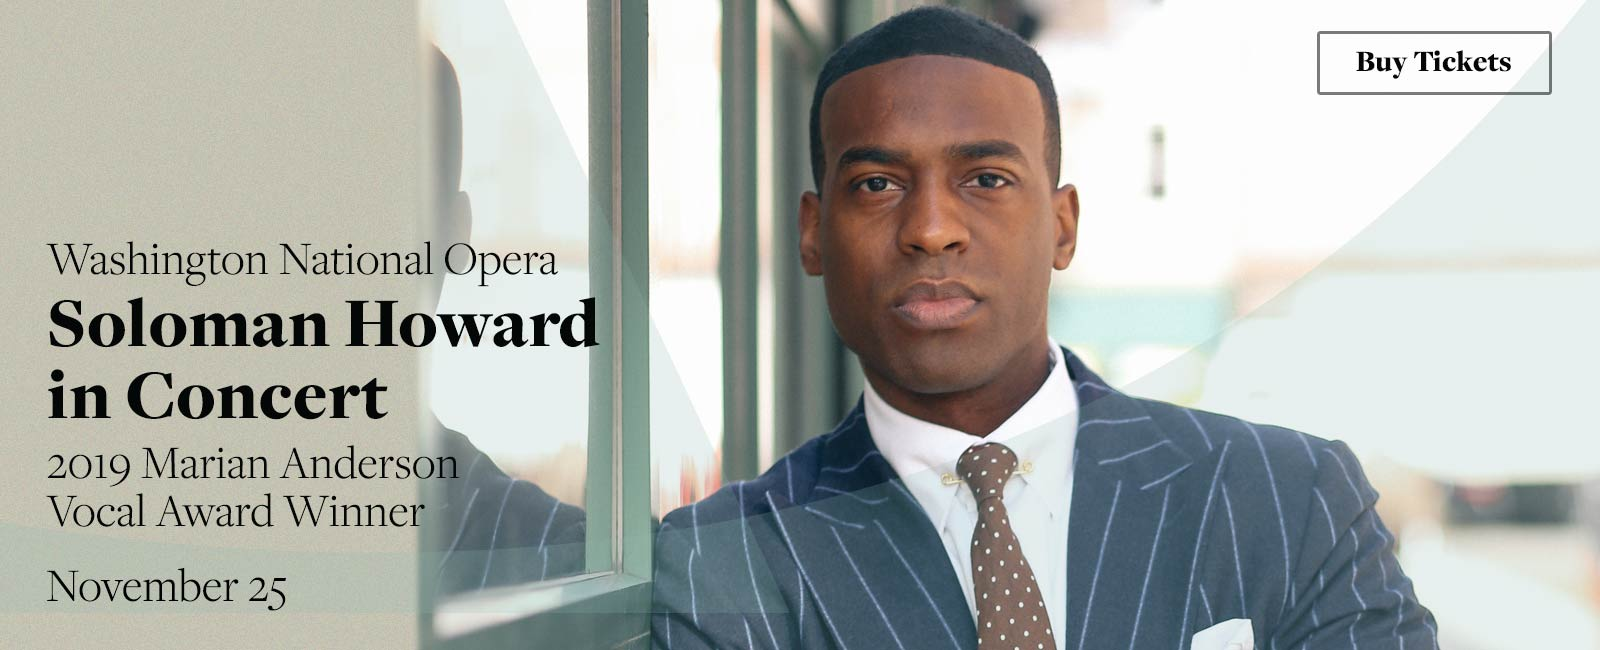 Washington National Opera: 2019 Marian Anderson Vocal Award Winner: Soloman Howard in Concert